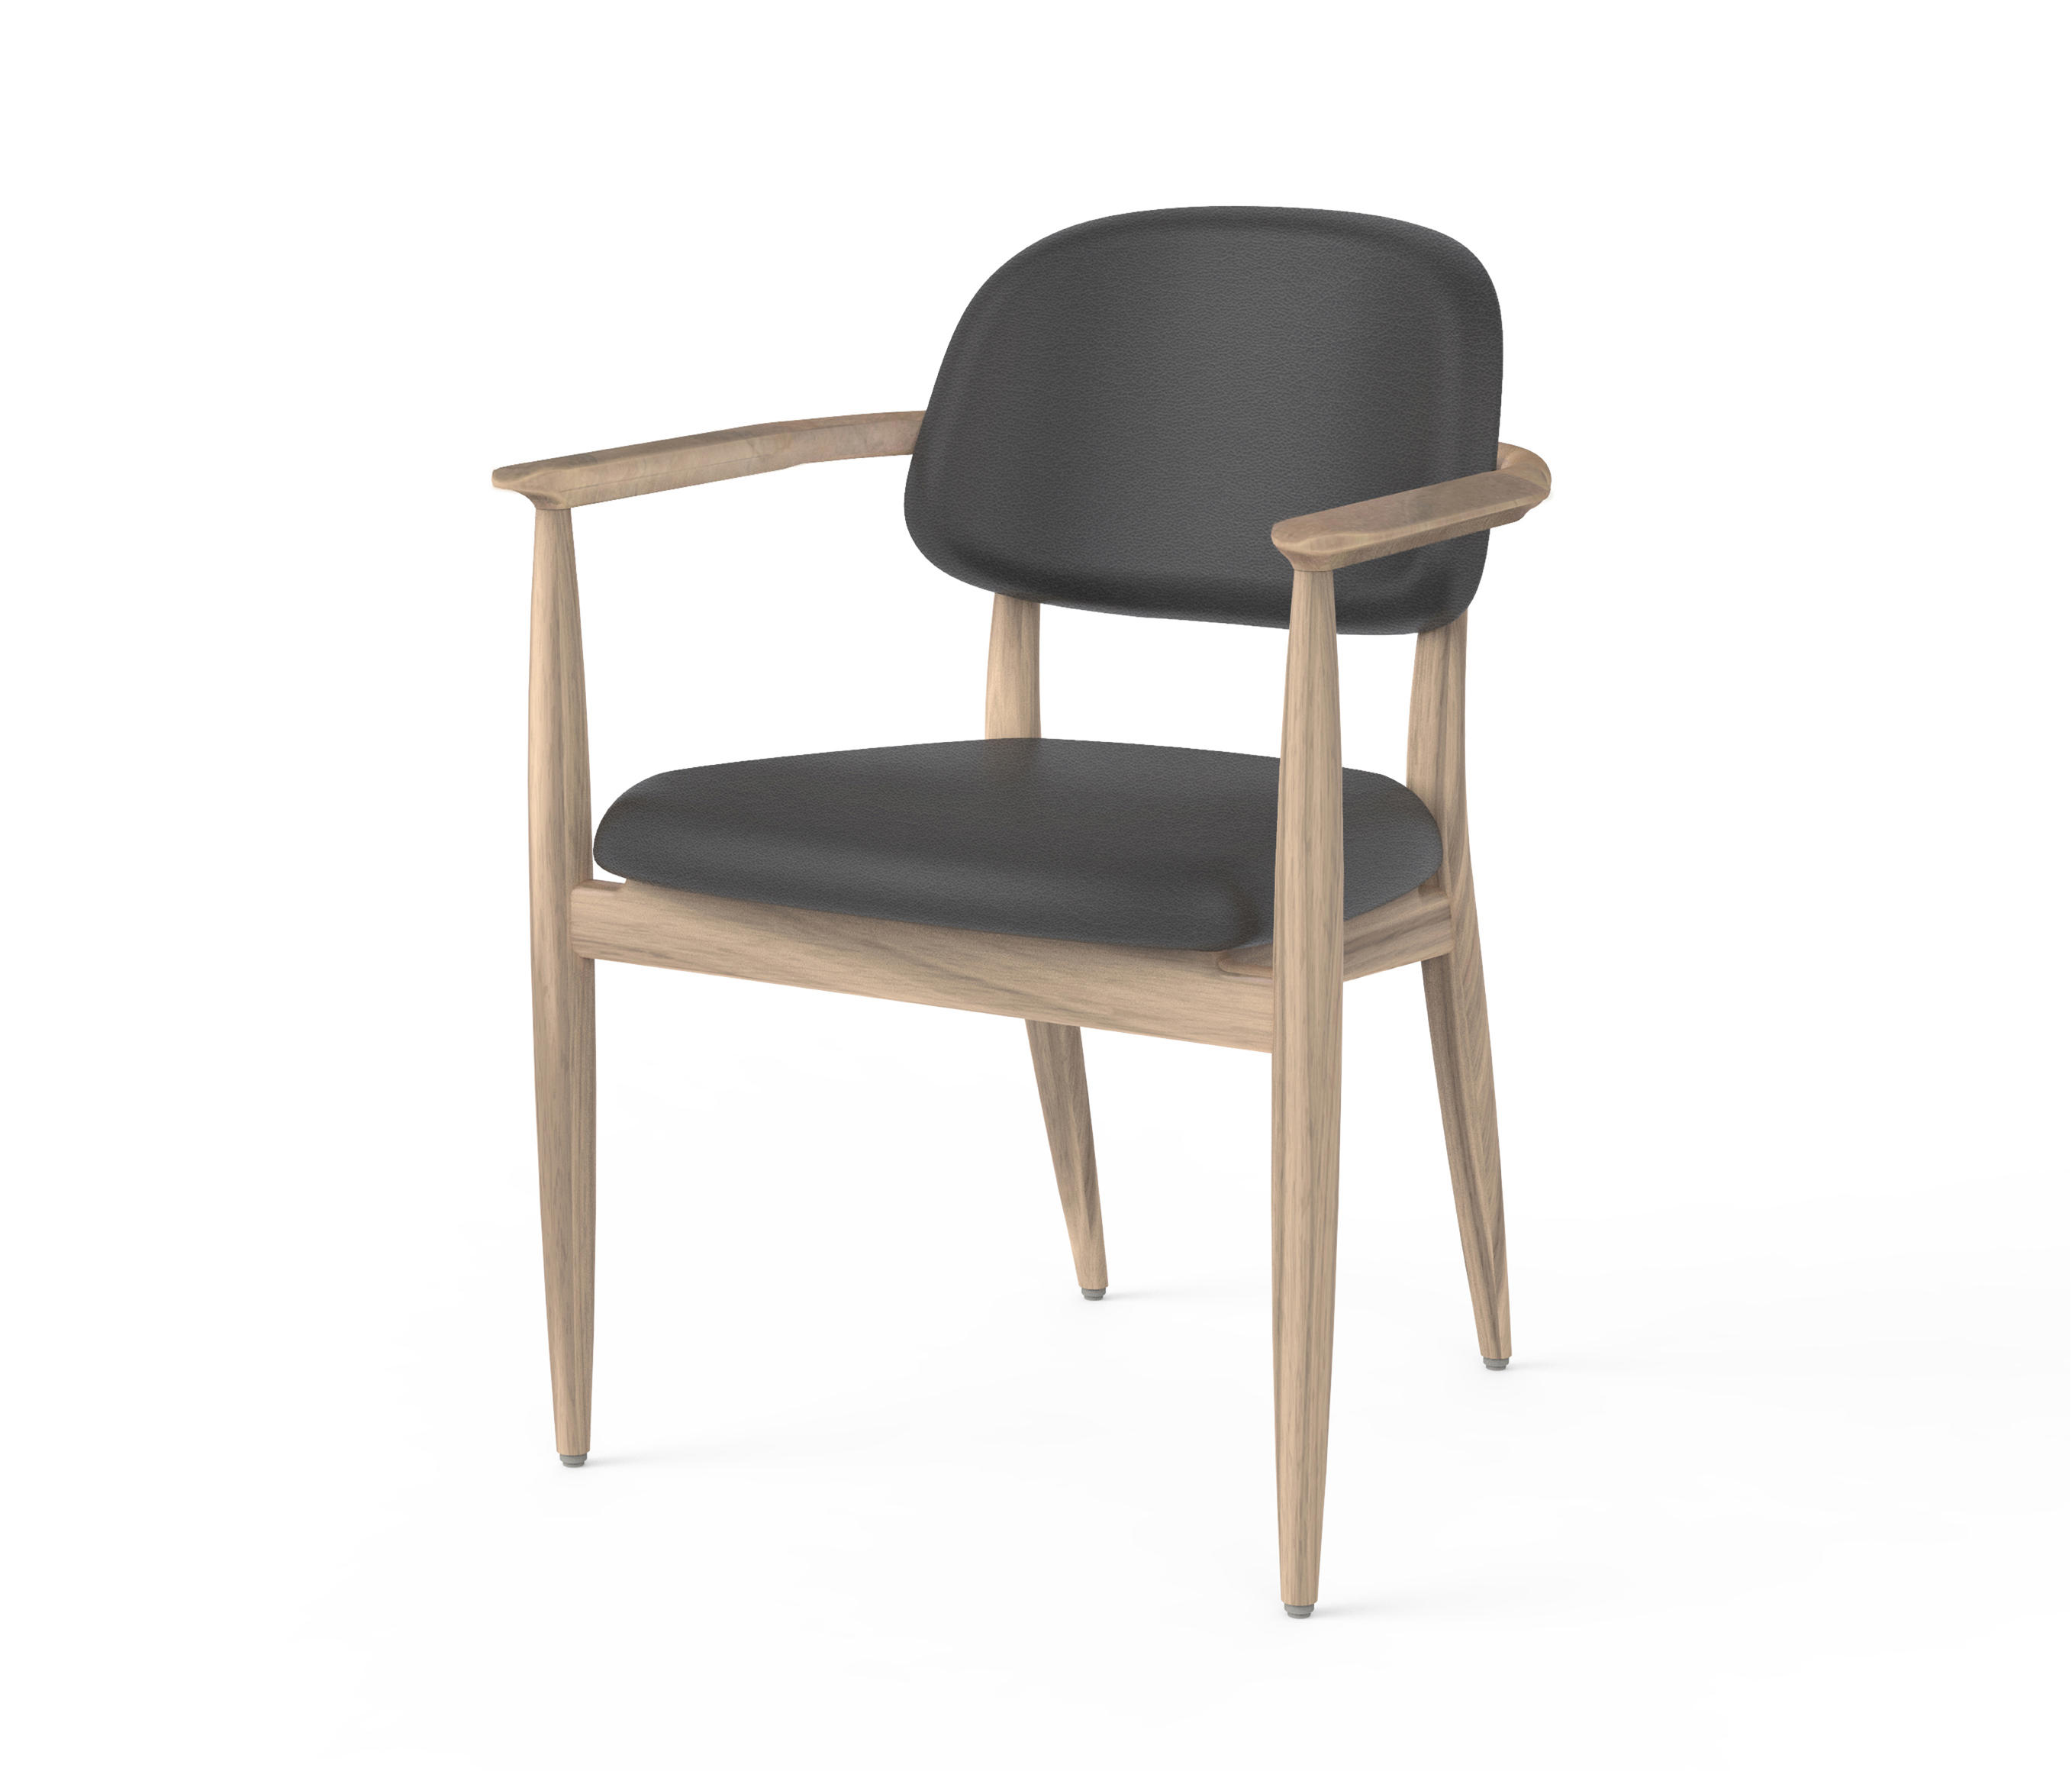 Superb Slow Dining Chair Designer Furniture Architonic Caraccident5 Cool Chair Designs And Ideas Caraccident5Info